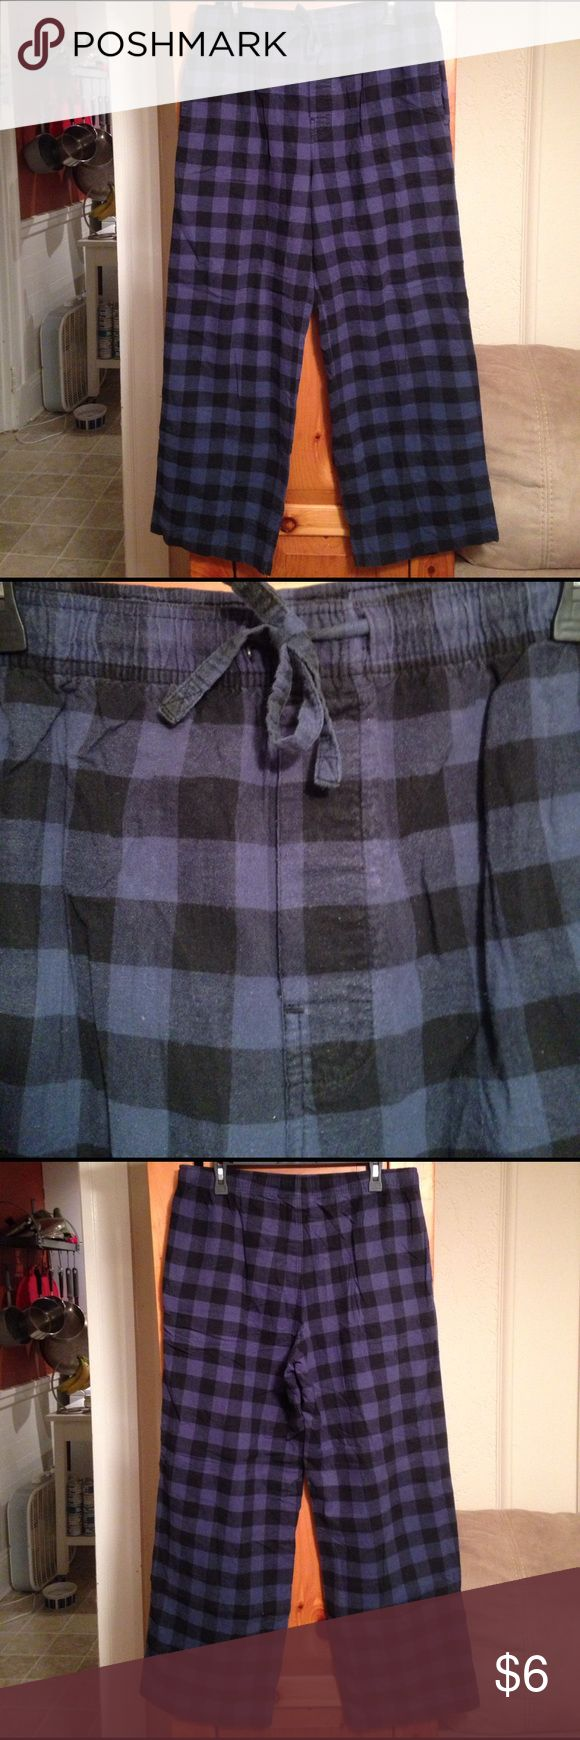 MERONA BLUE PLAID FLANNEL PAJAMA PANTS Men's M Pre-owned blue plaid flannel pajama bottoms by MERONA. Size Men's M or 32/34. Regular length. Elastic waistband with string tie. Material: 100% cotton. Slightly faded. No holes or stains. Merona Other